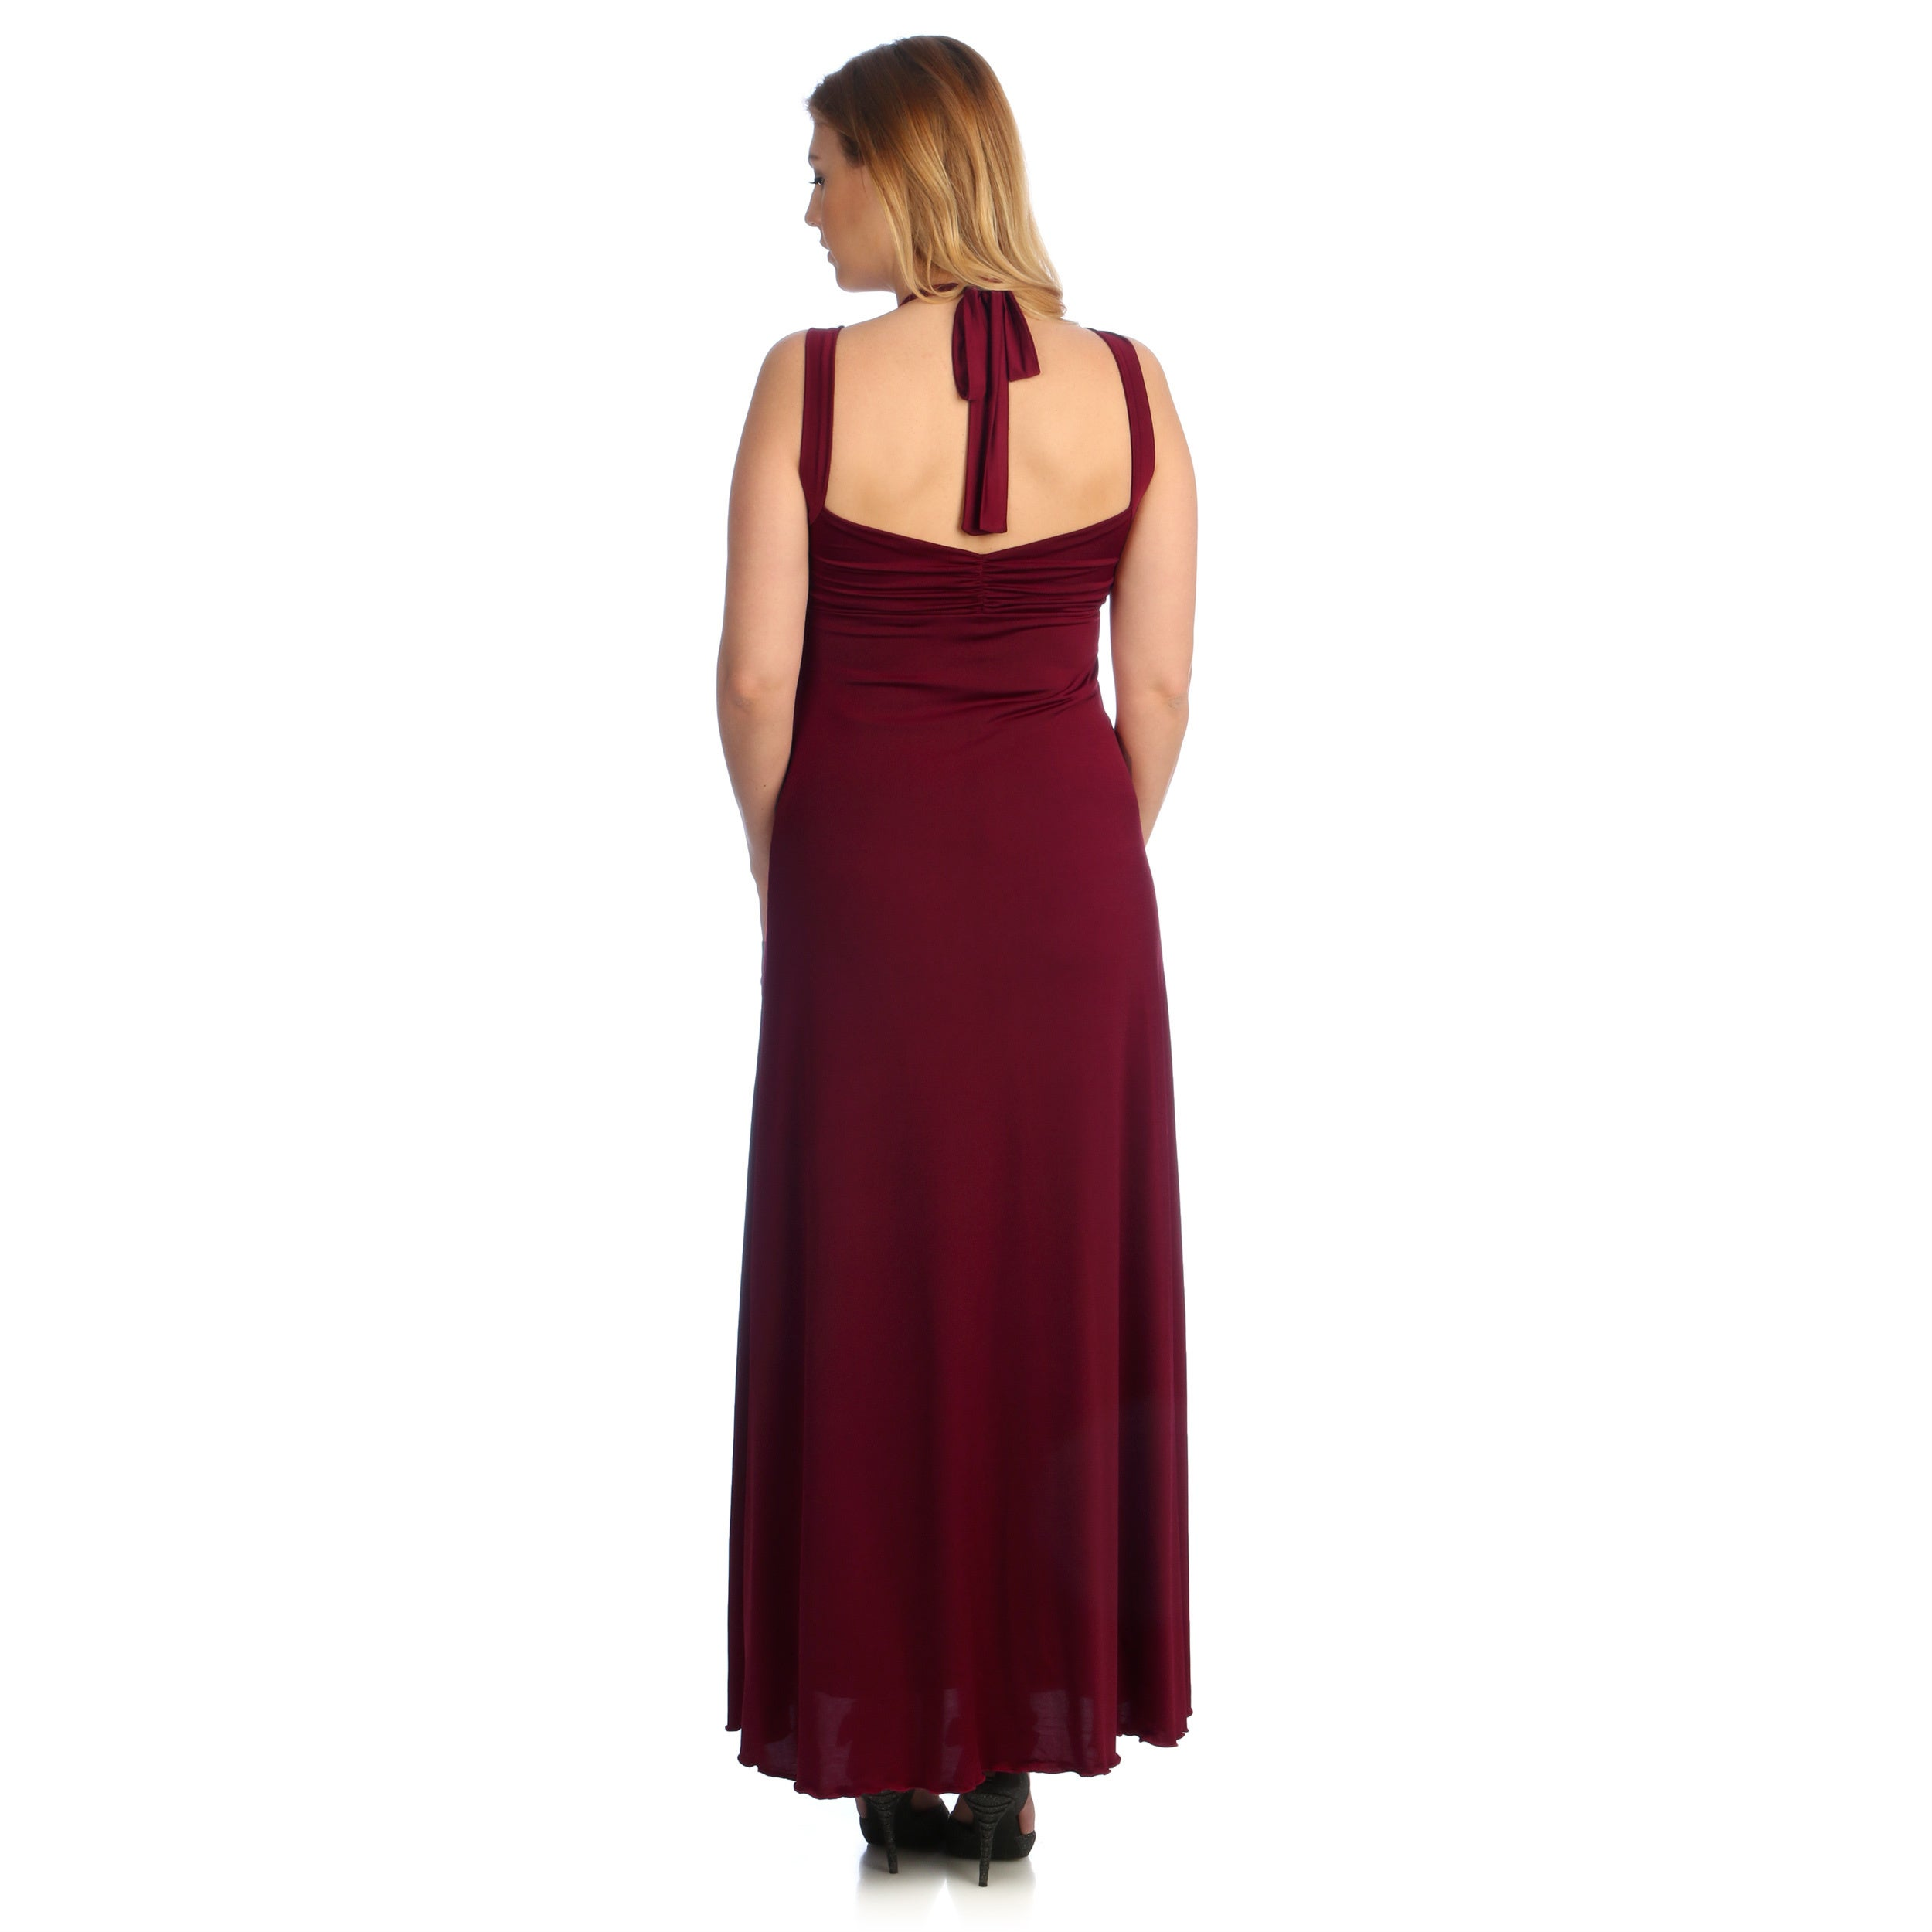 5d0f3b227ff Shop Evanese Women s Plus Size Cross-tie Halter Dress - Free Shipping Today  - Overstock - 8769814